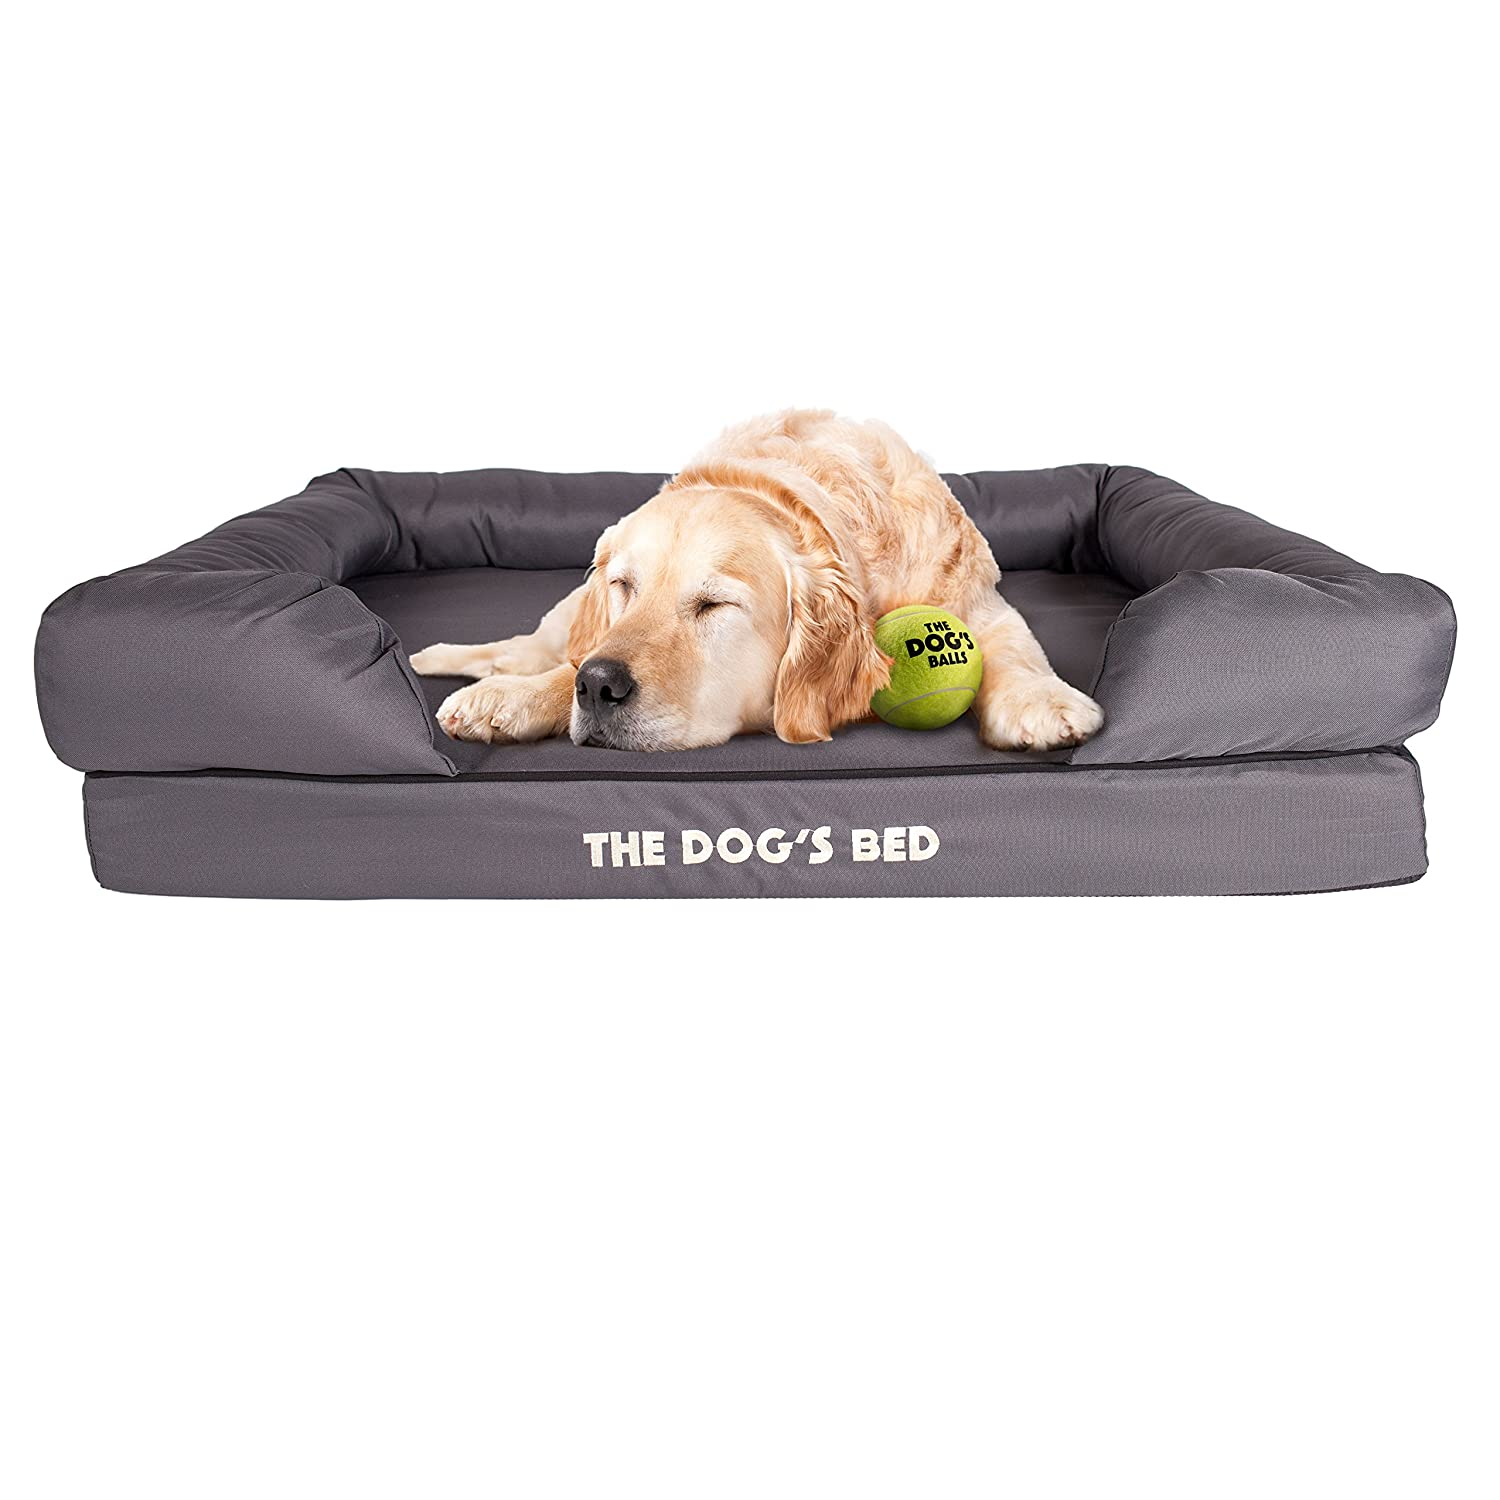 Grey Large Bed (36 x 27.5)Replacement Outer Cover (Cover ONLY  NO Bed) for The Dog's Bed, Washable Quality Oxford Fabric, XXL 54  x 36  x 6  (Grey with Black Piping)